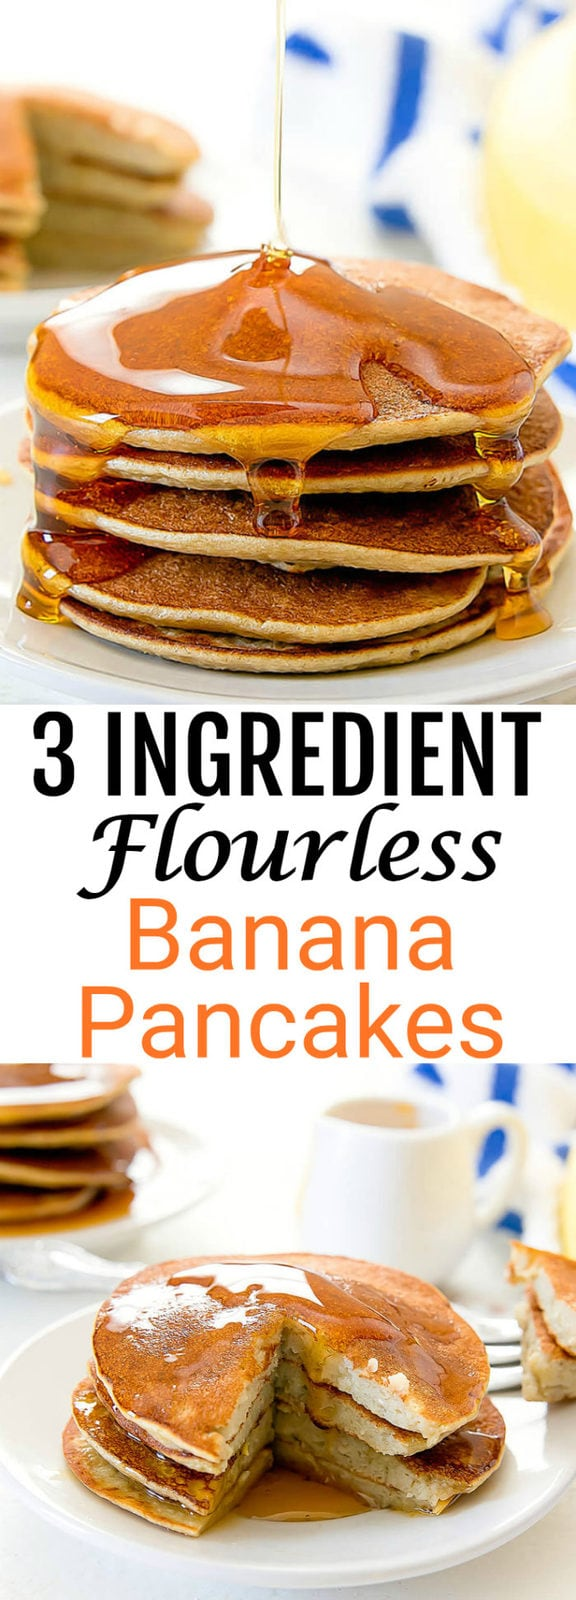 3 Ingredient Flourless Banana Pancakes